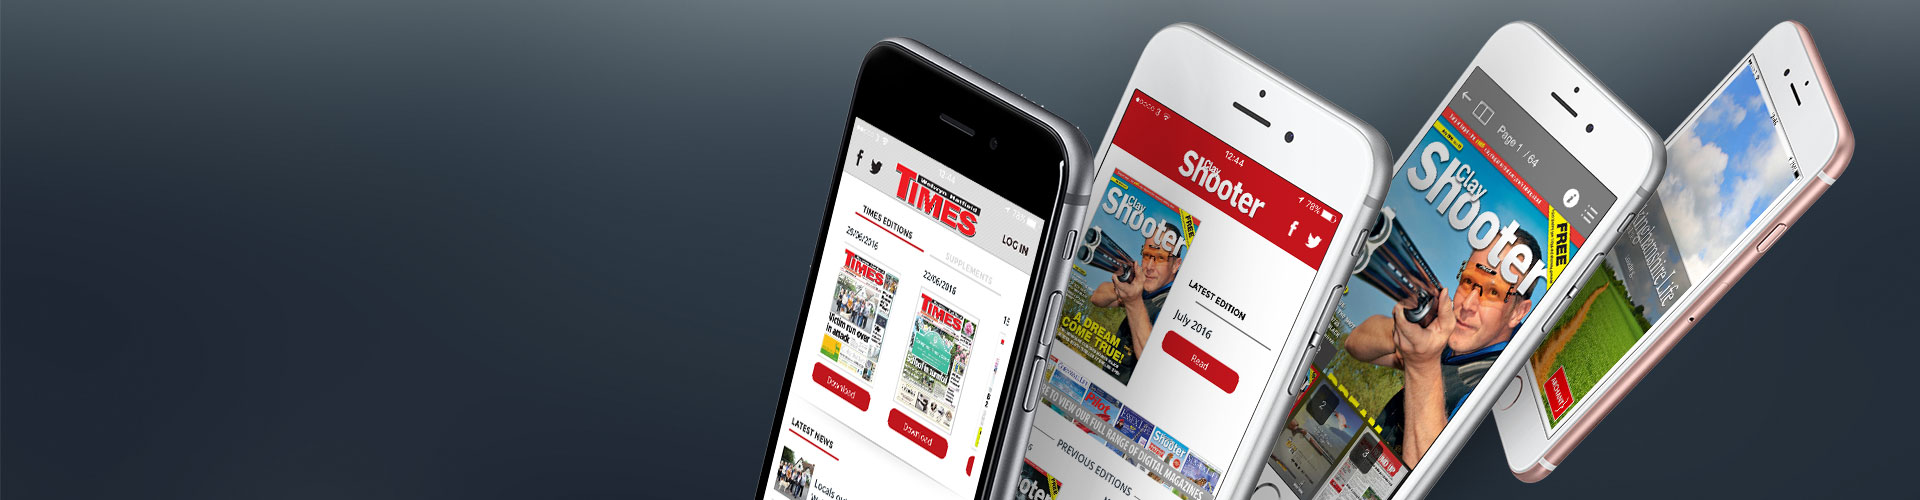 PageSuite to Launch Over 60 Apps for Archant